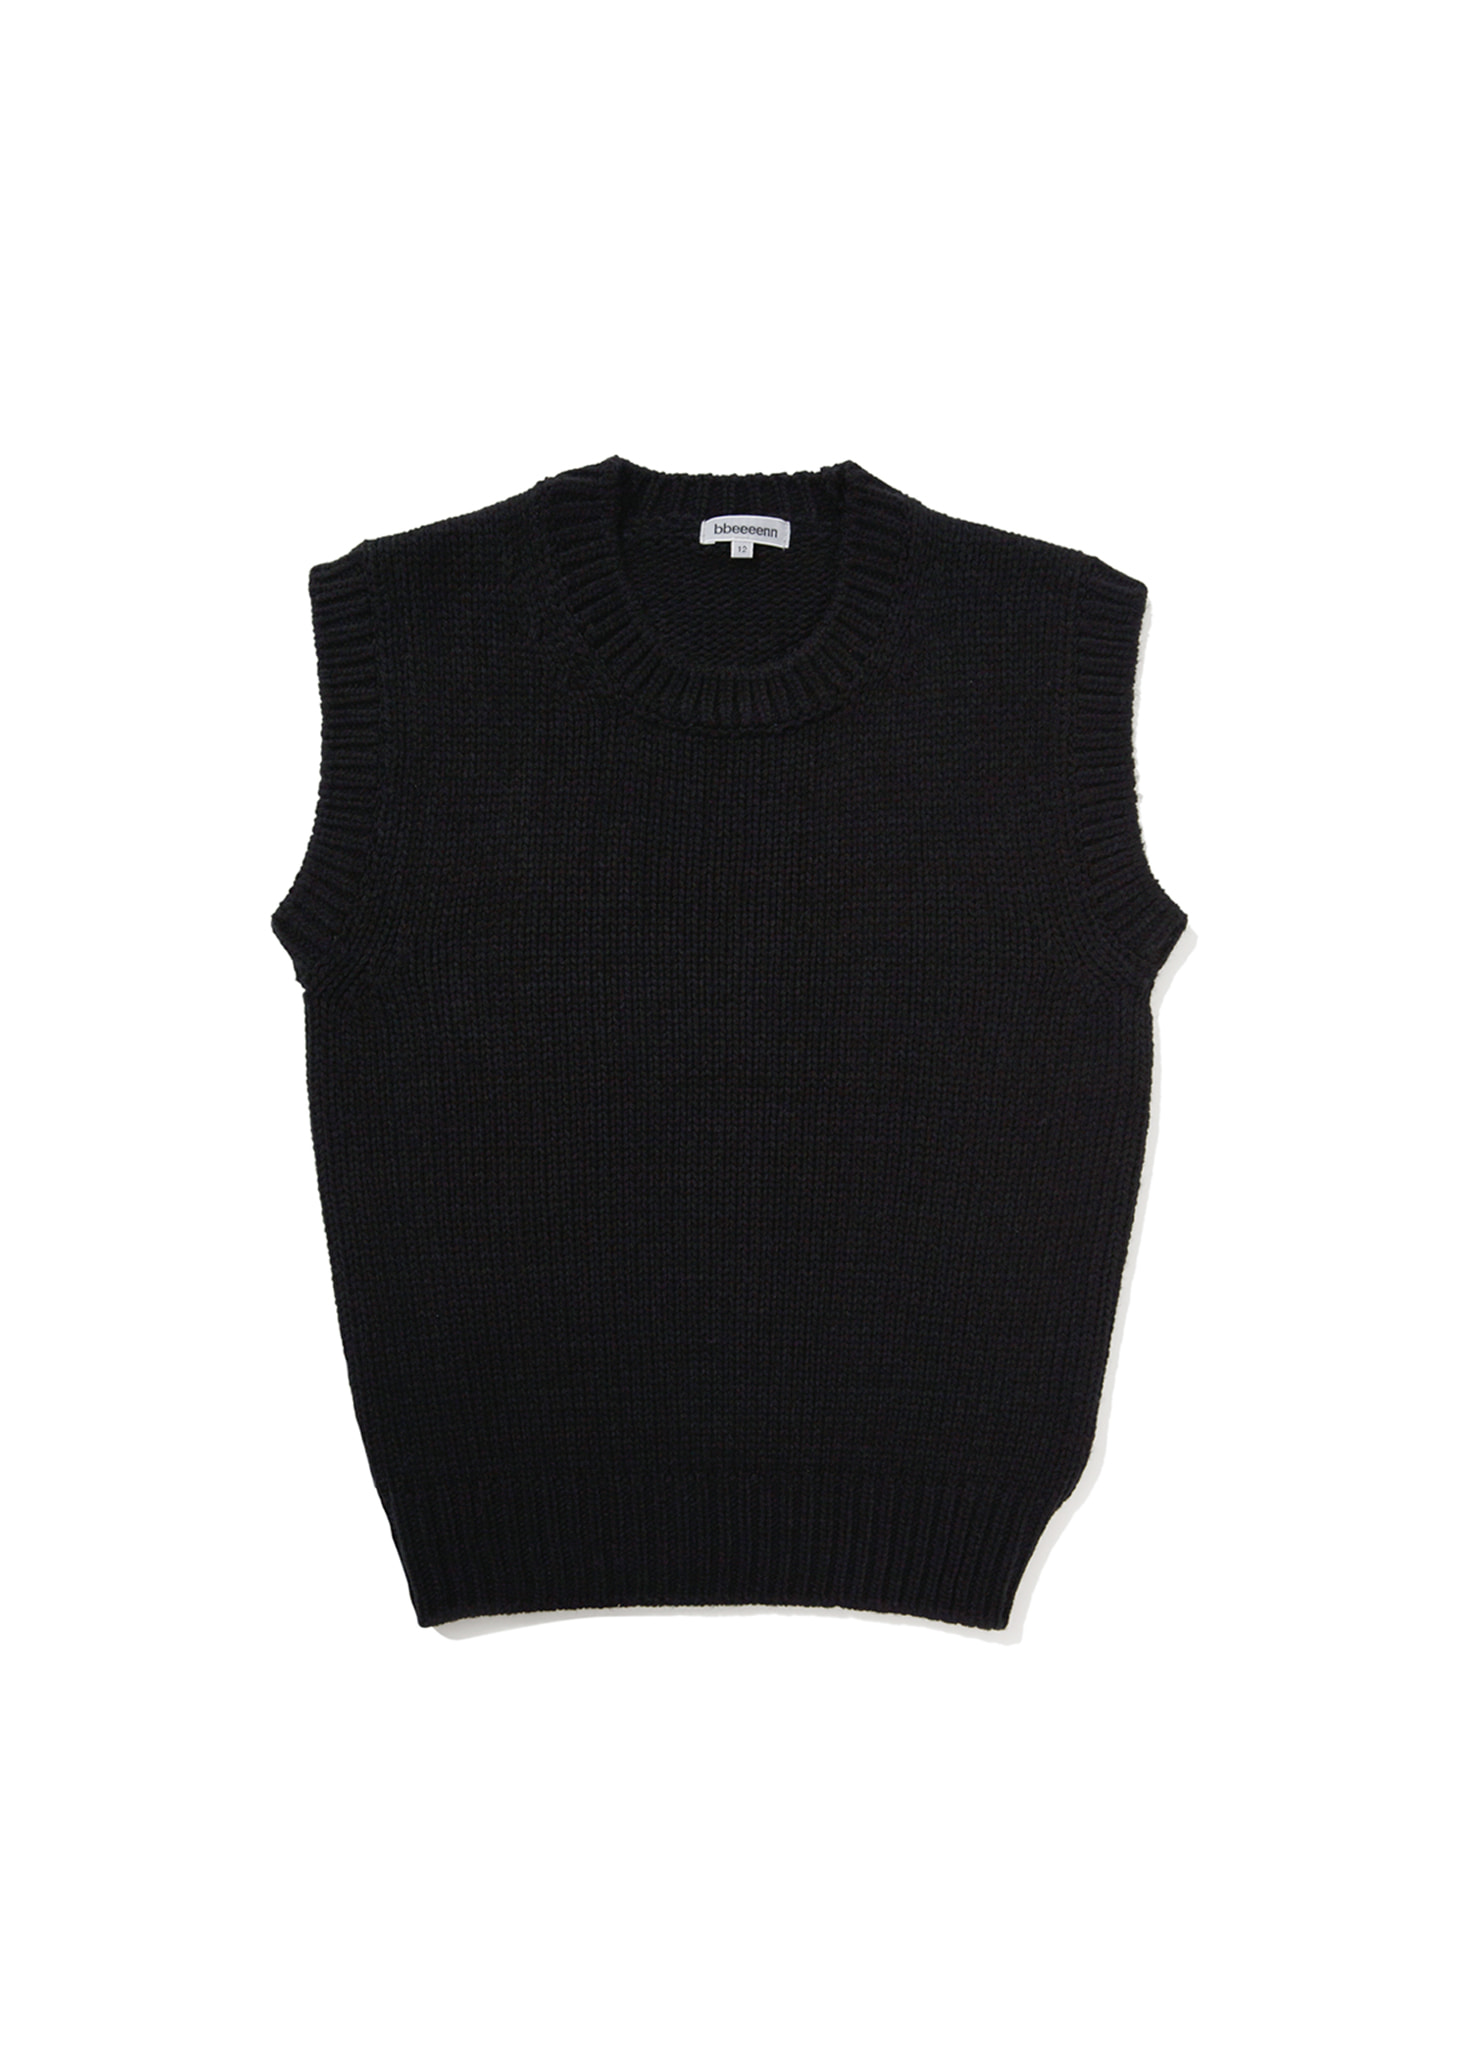 DADDY)Ben)Chunky Warm Knit Vest_Black